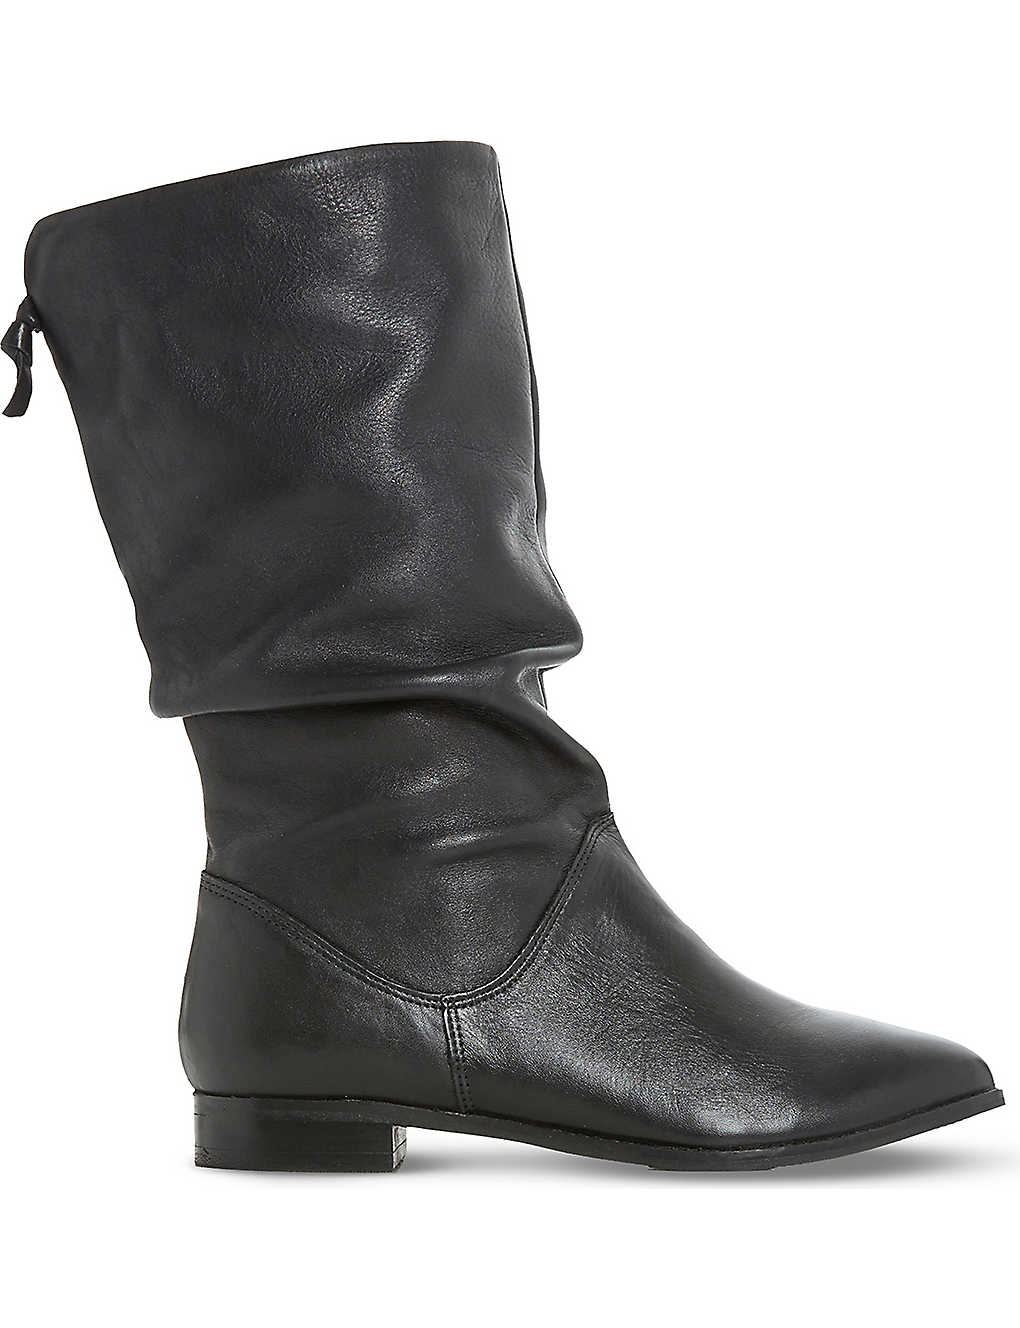 573730539f5 Rosalind slouchy leather boots